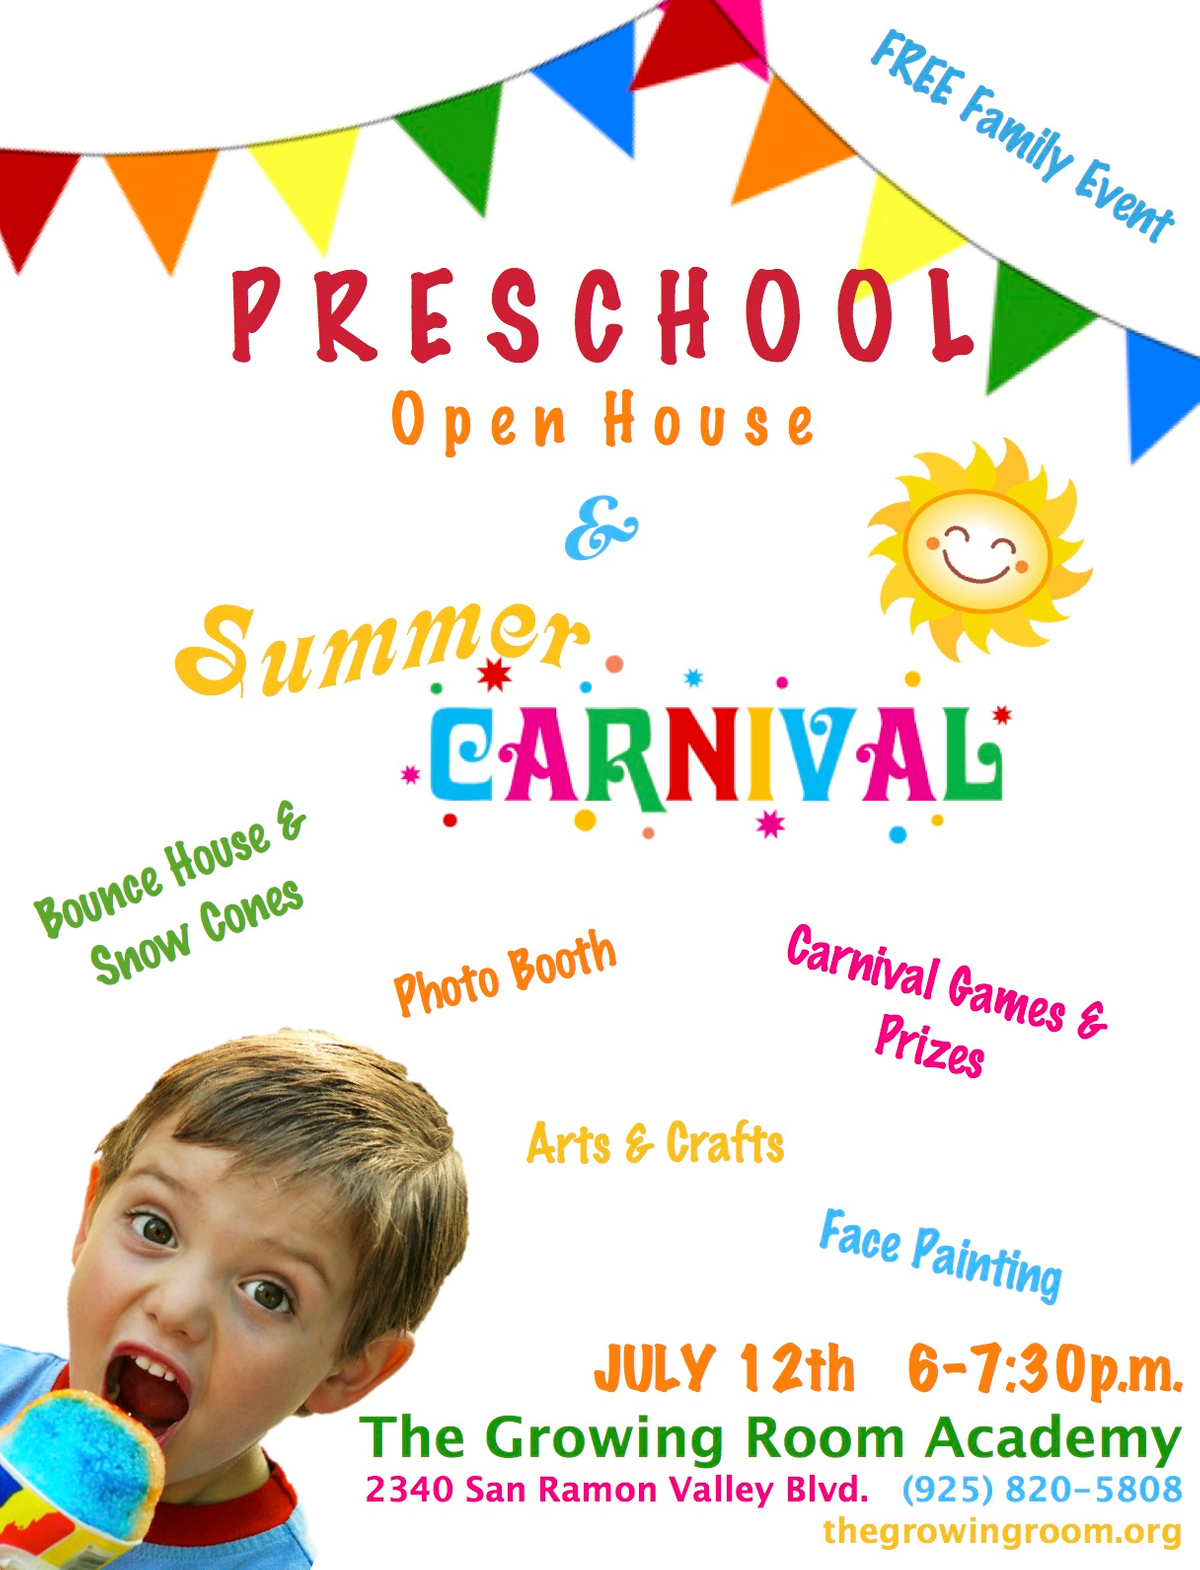 Preschool Open House-Carnival 3 JPEG.jpg